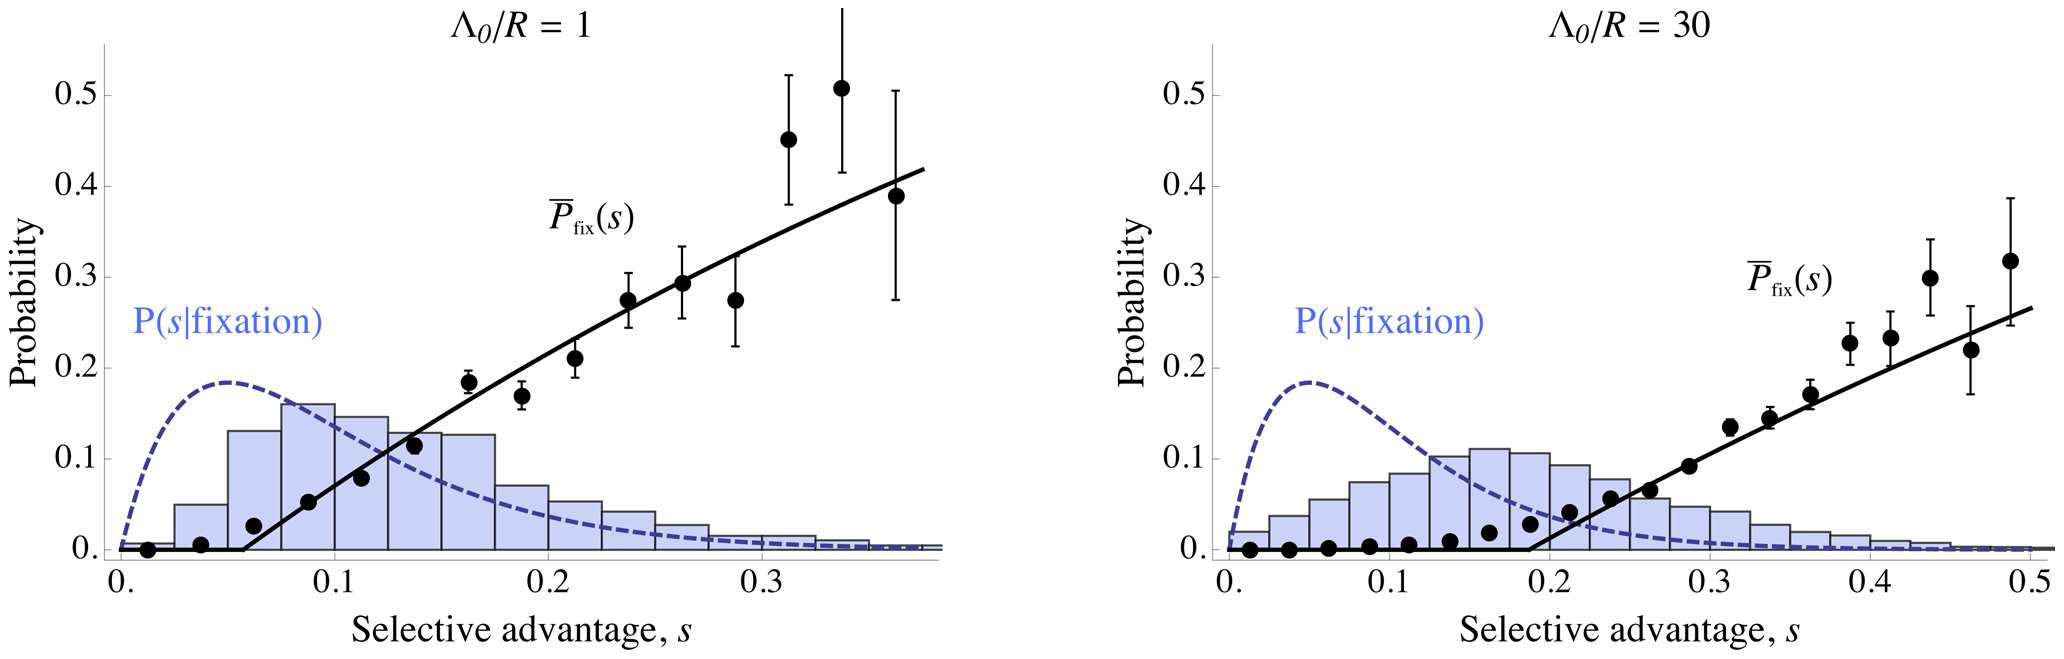 Effect of interference on distribution of successful mutations.